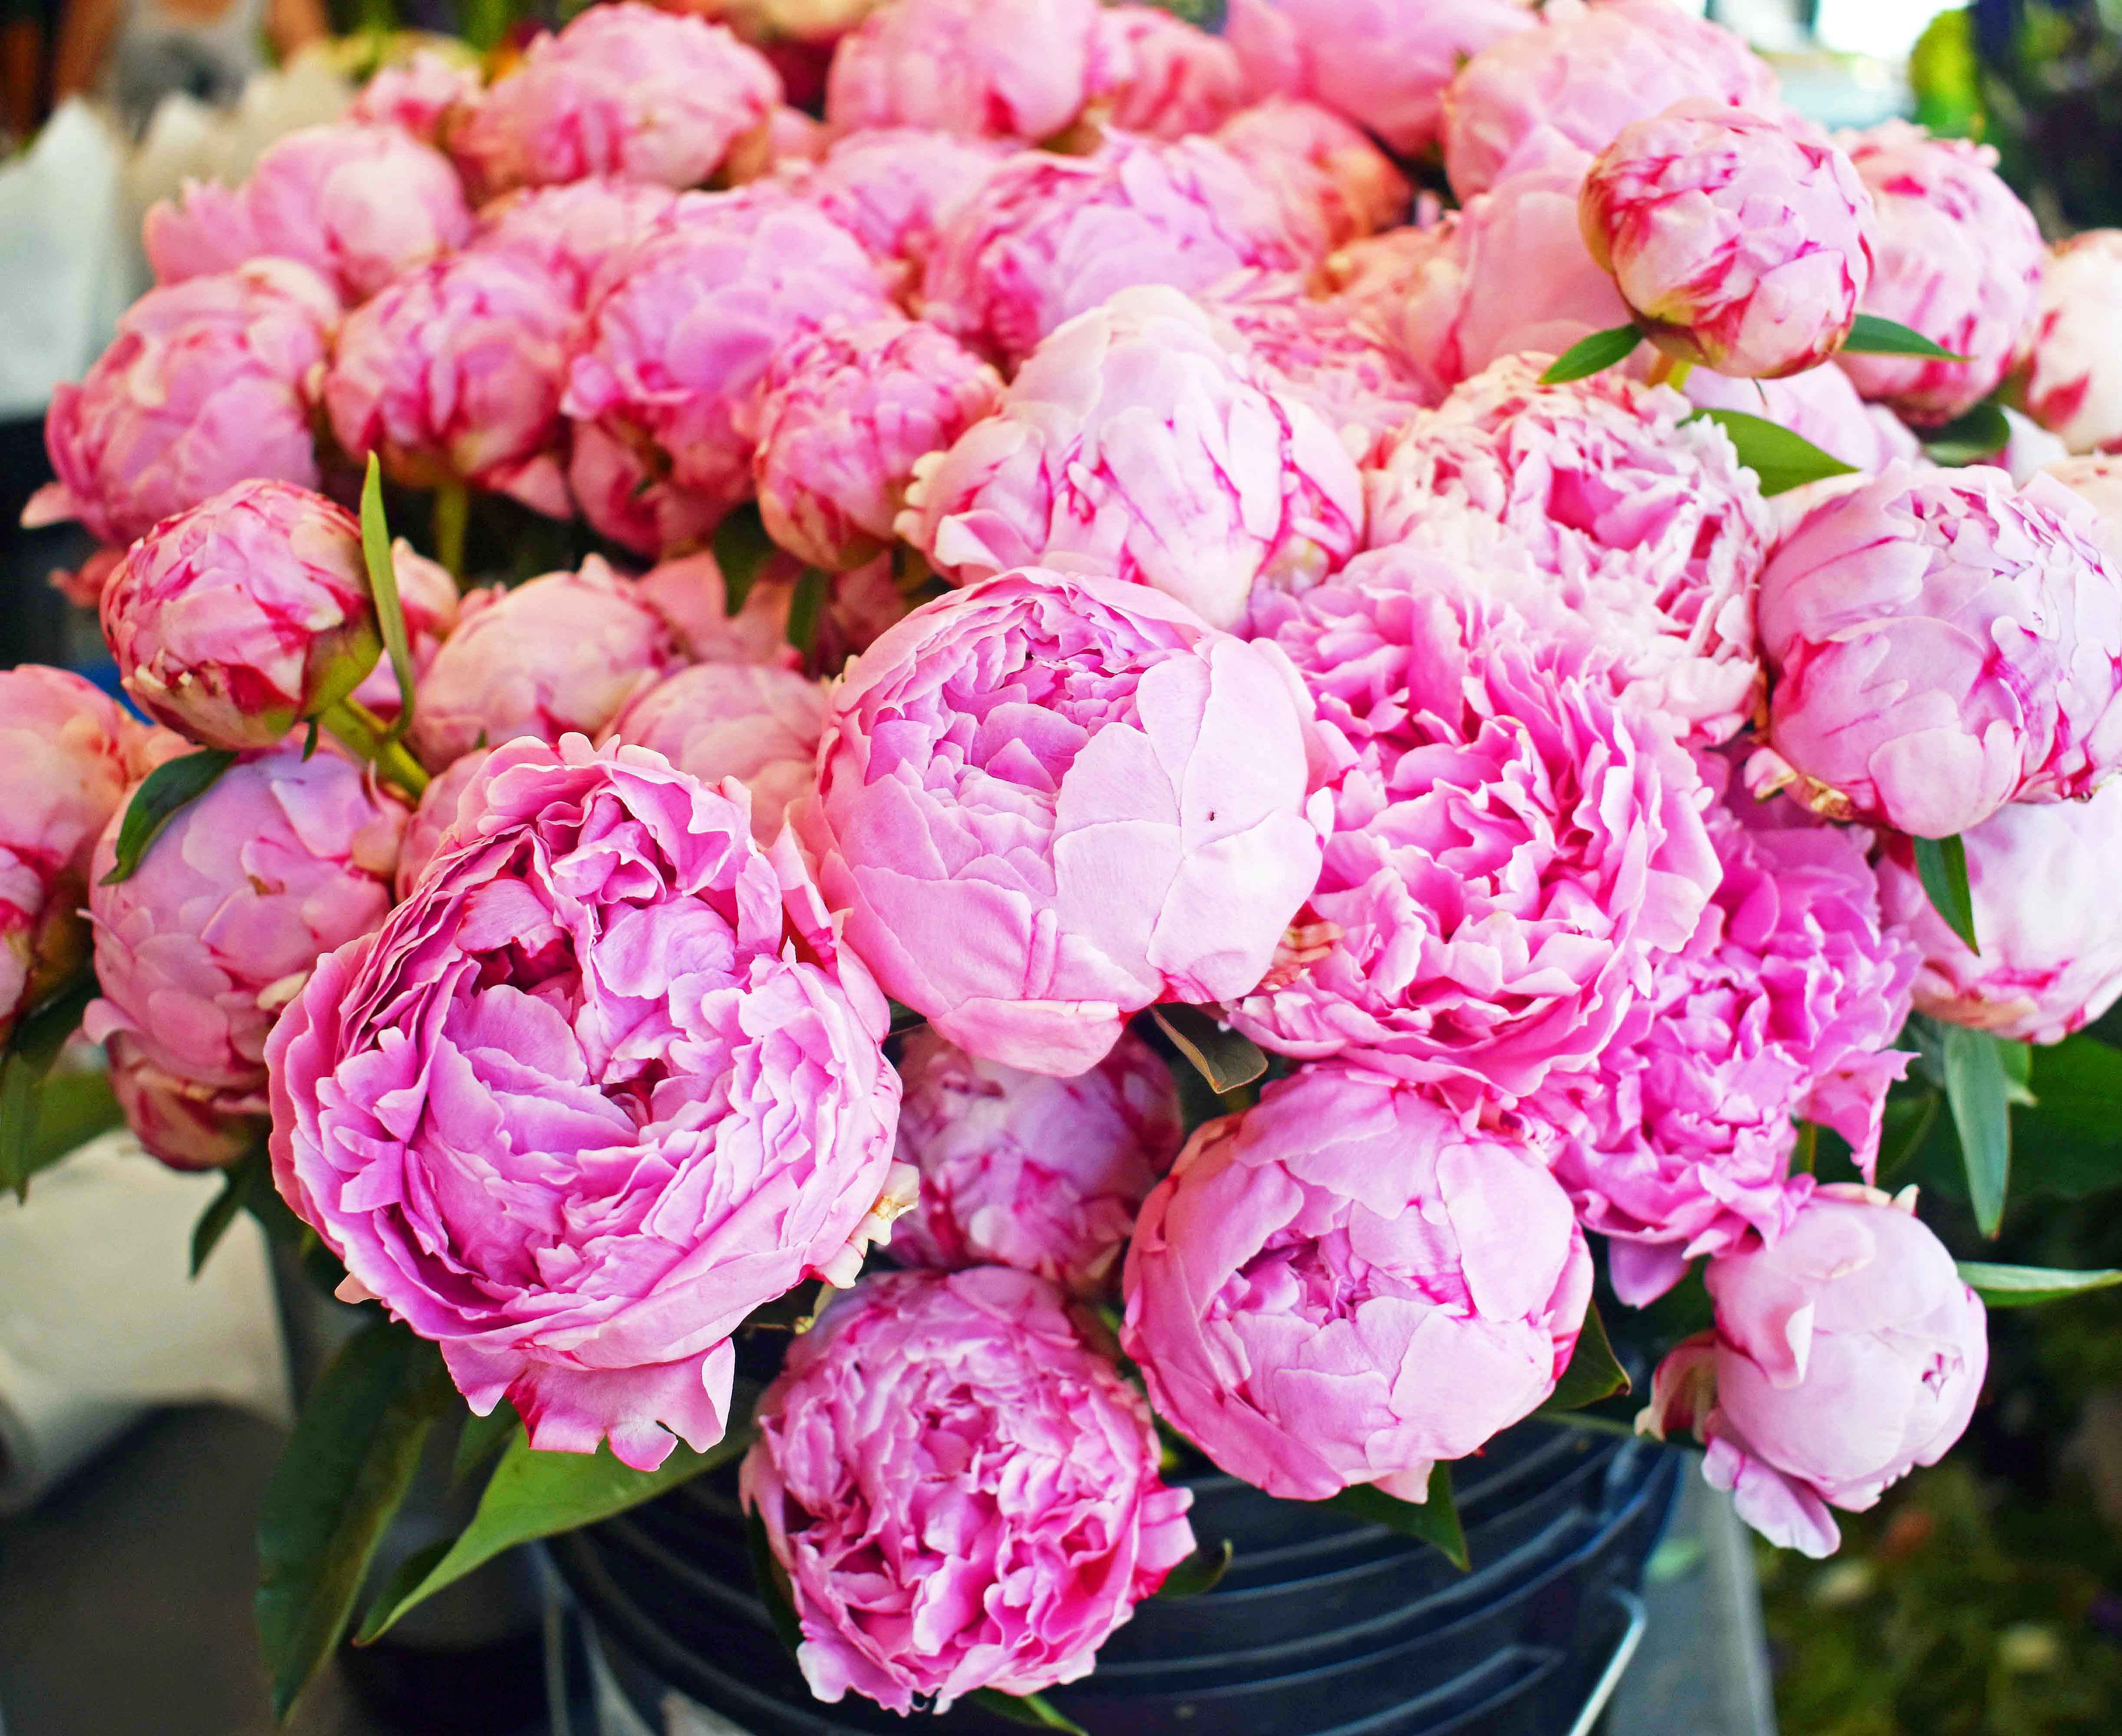 Pink peonies at Pike Place Market. Best Places to Eat and See in Seattle. The most popular spots to visit and the best restaurants. Tips on the best places to see in Seattle Washington. www.modernhoney.com